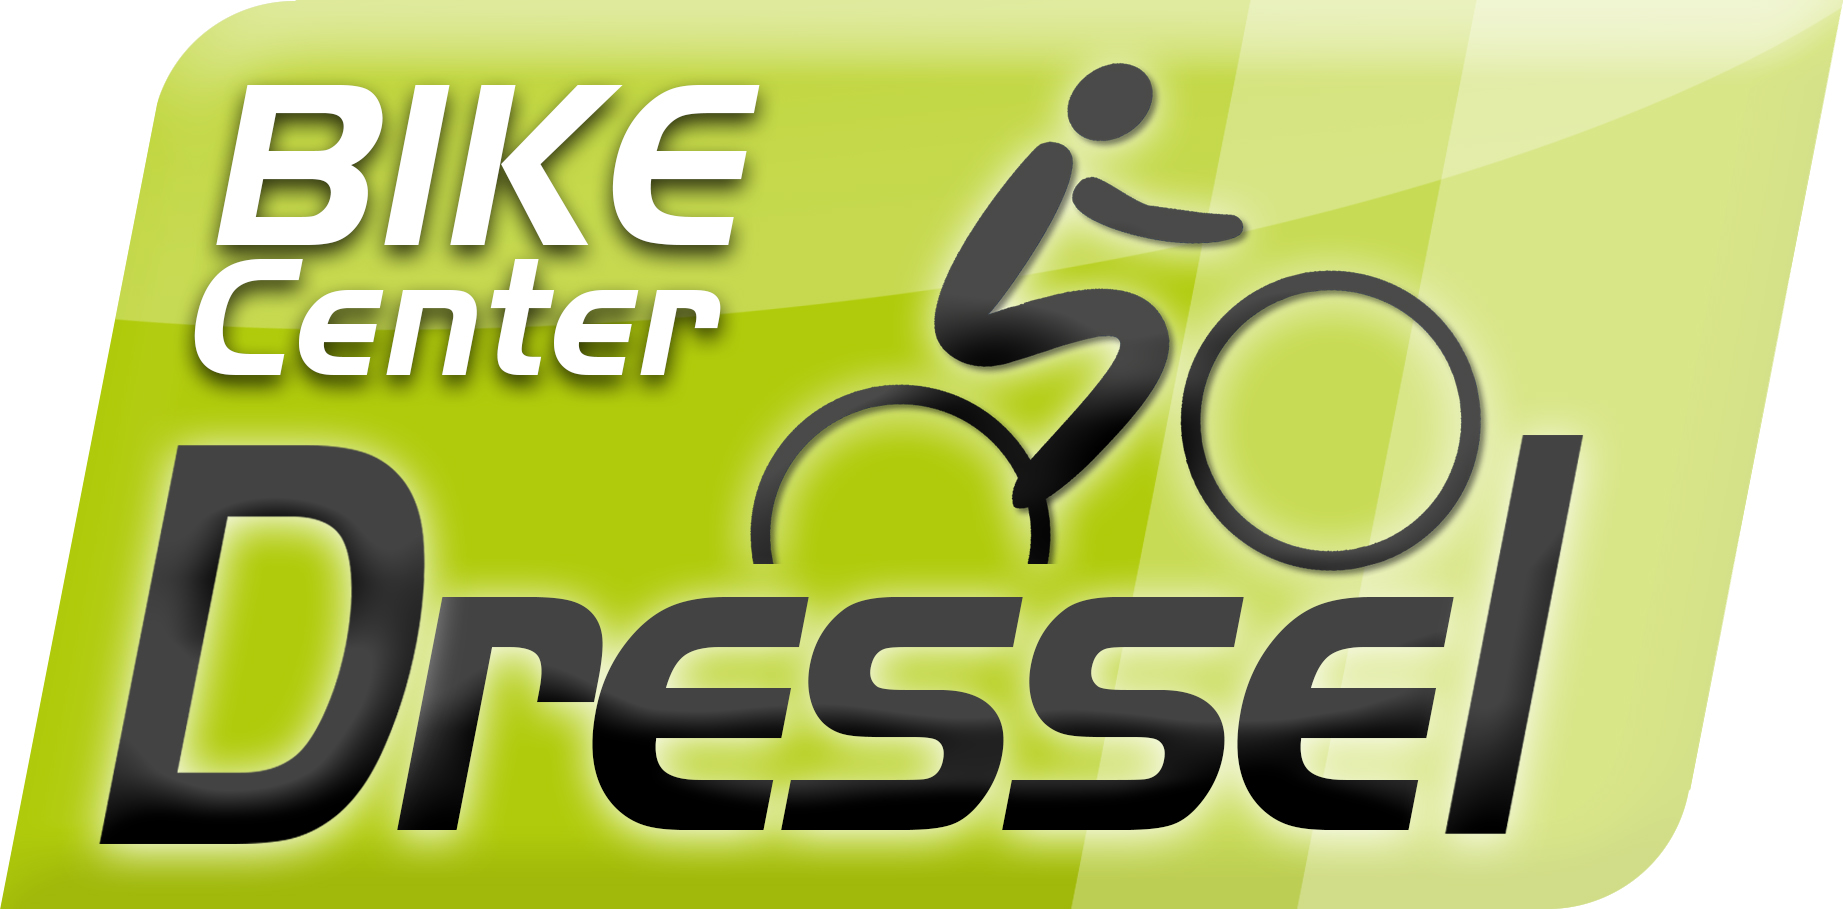 Logo-Bike-Center Dressel